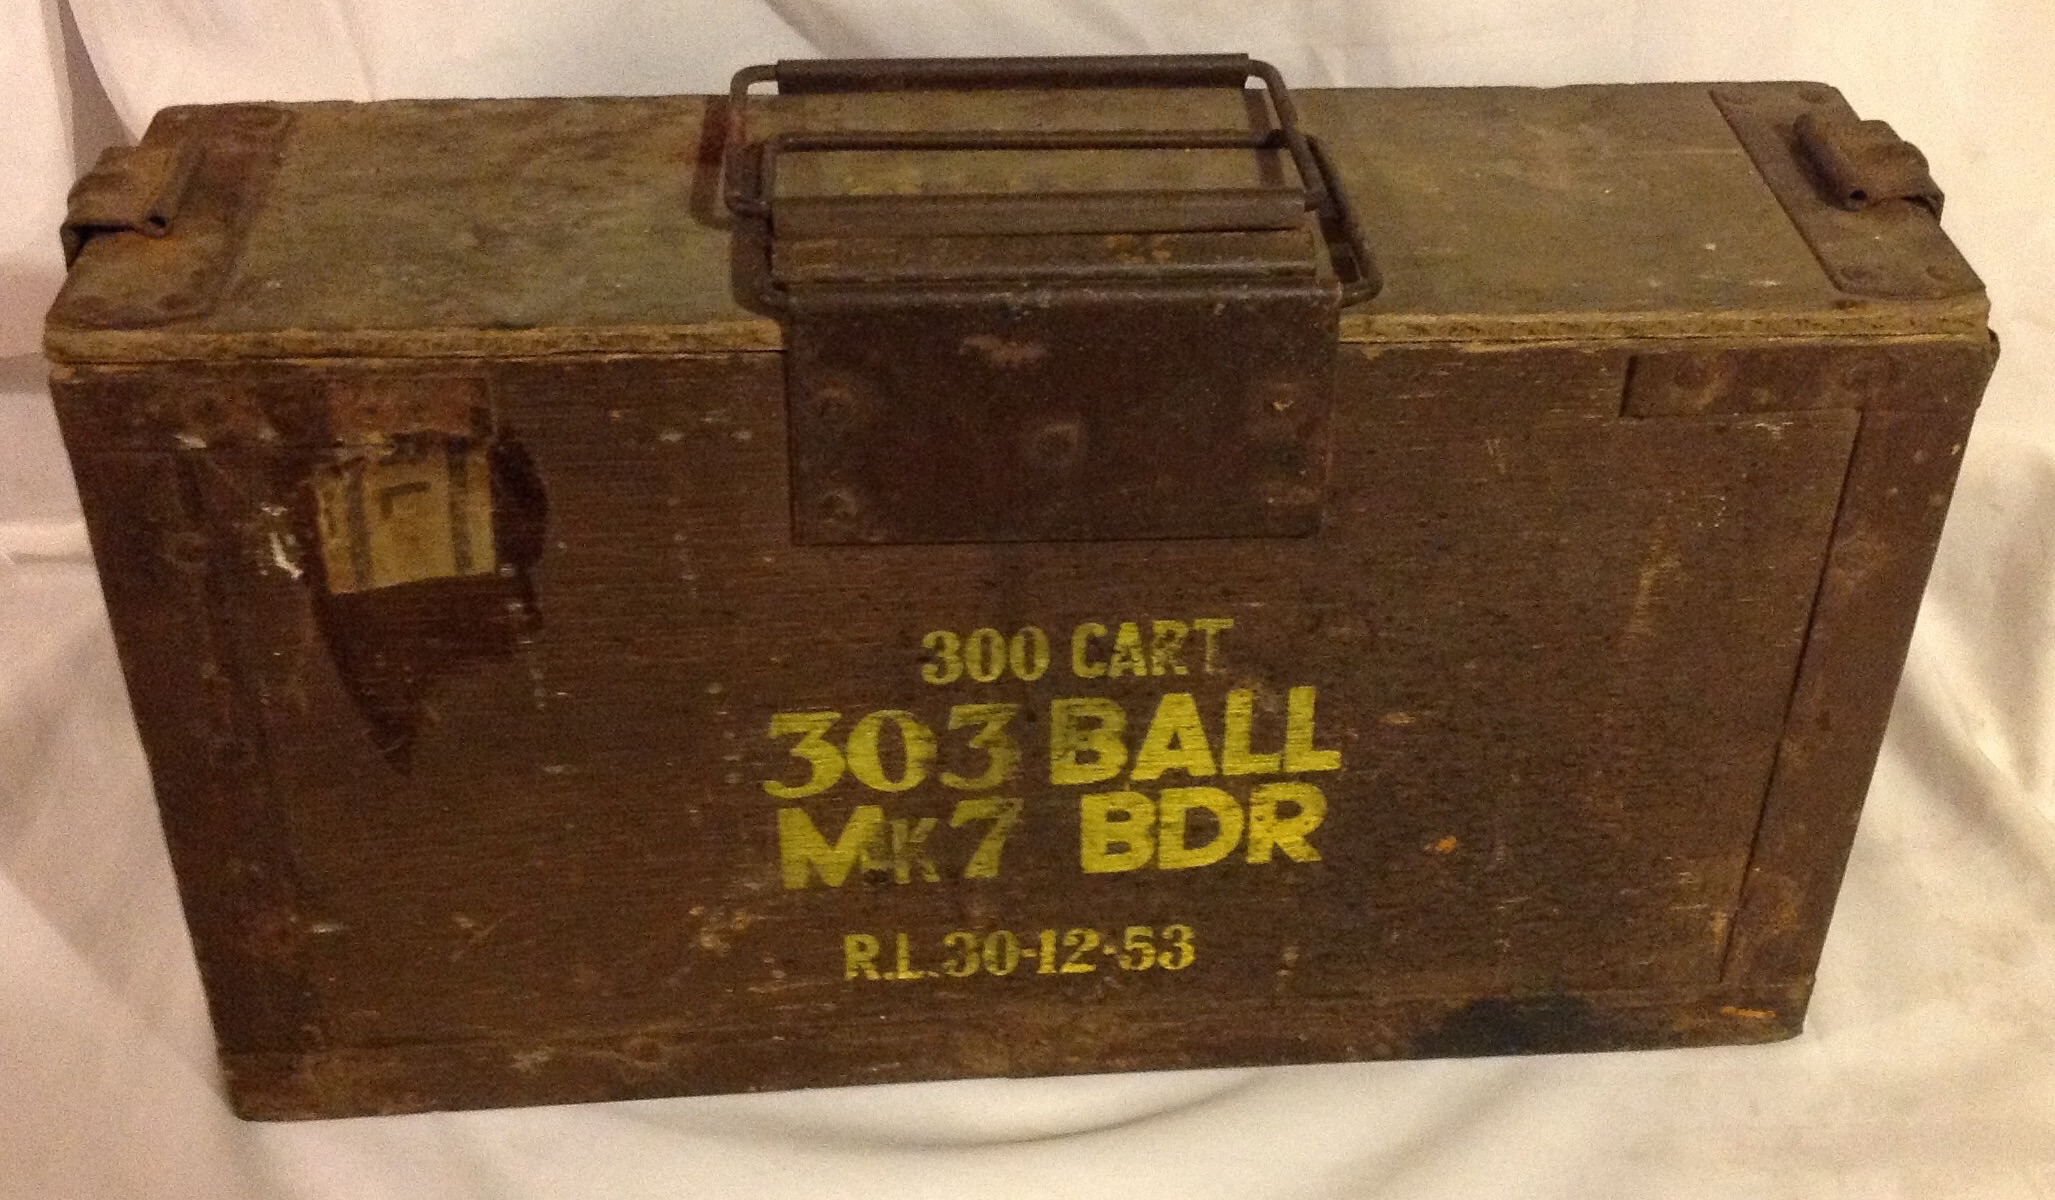 Ammunition Box Tales From The Supply Depot